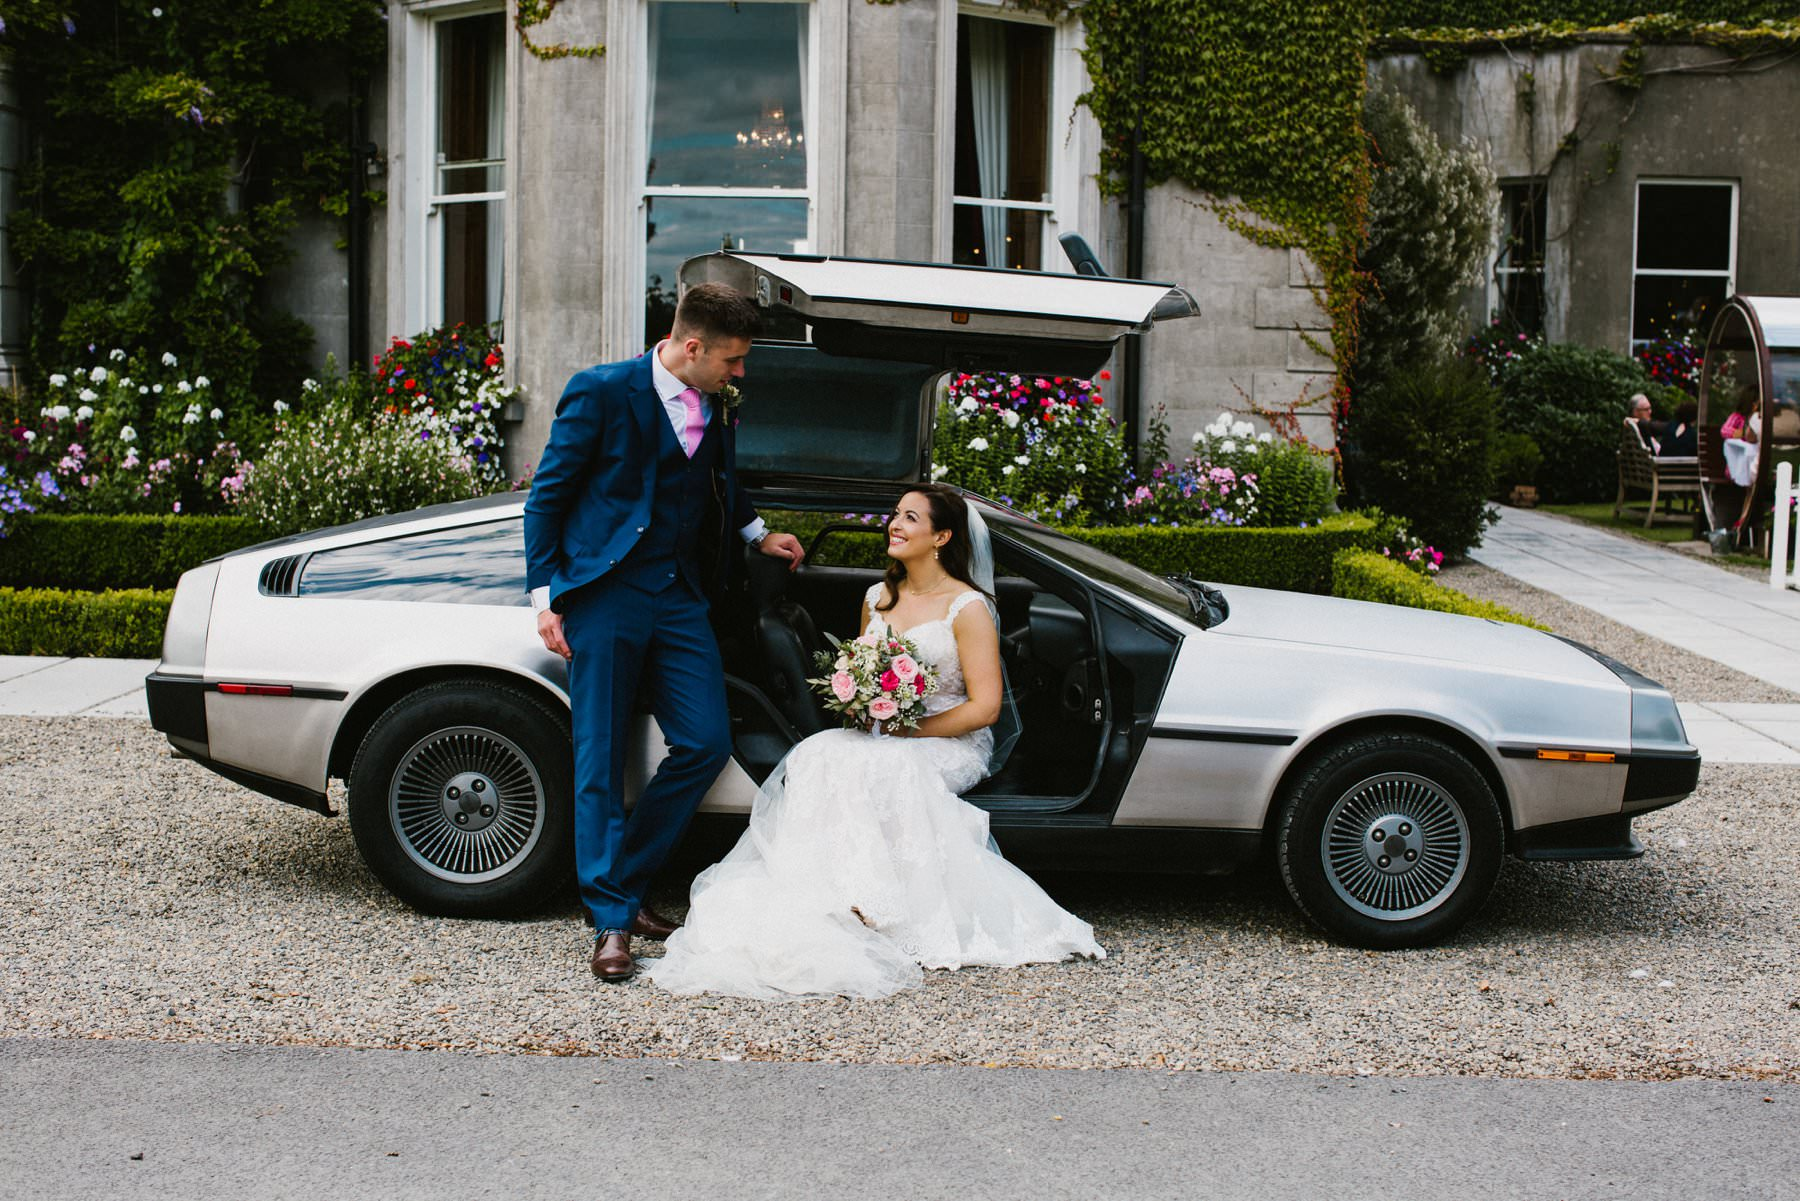 delorean wedding photography dublin